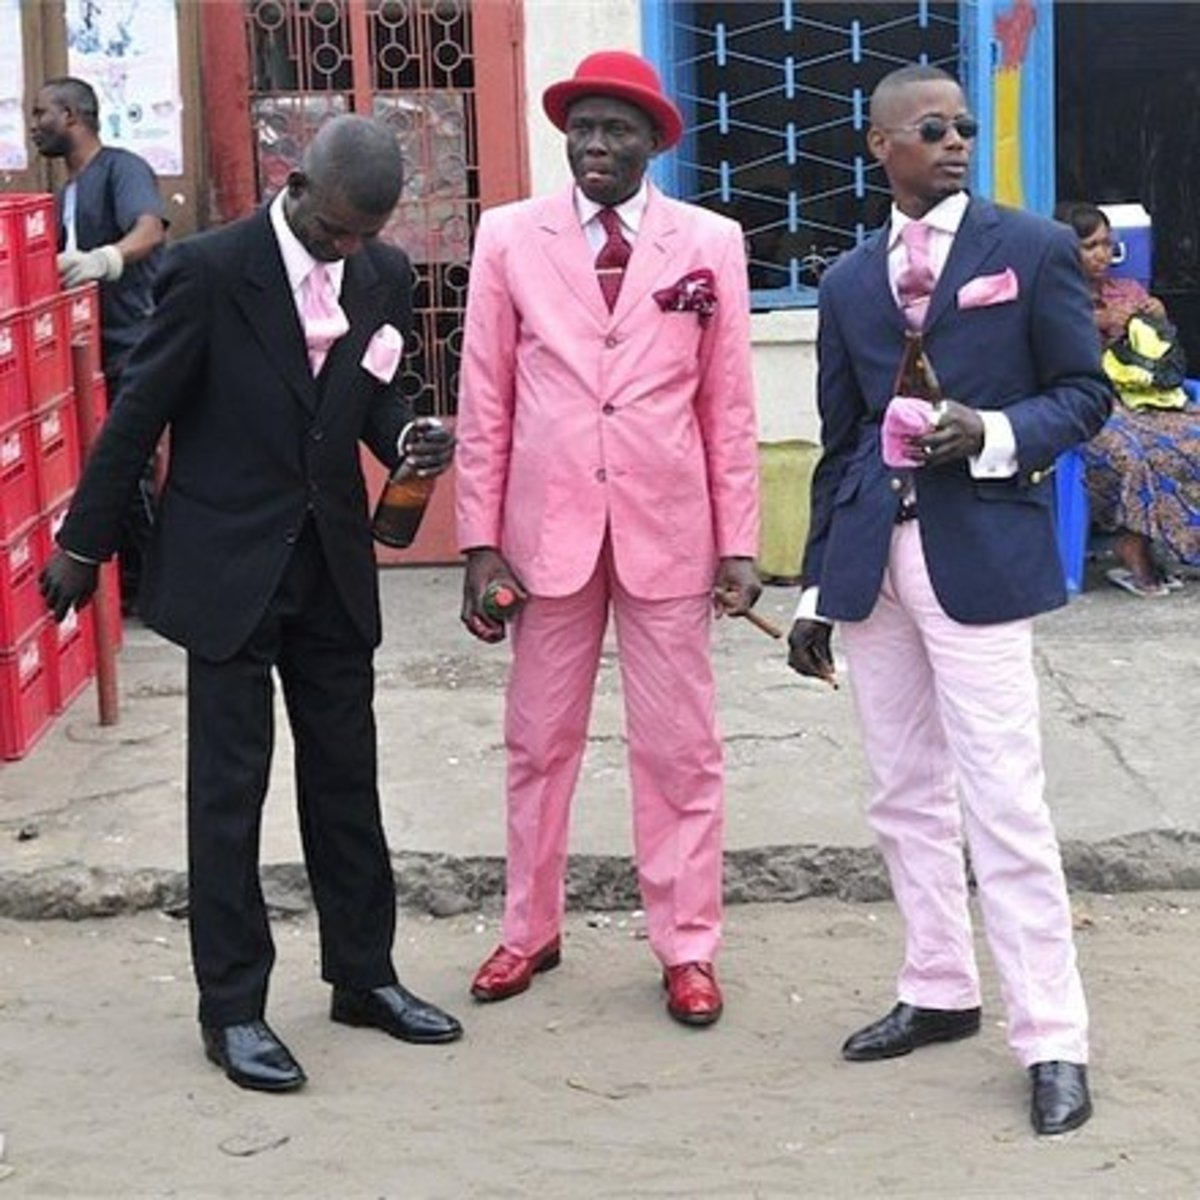 The Fashion Dandies of Congo